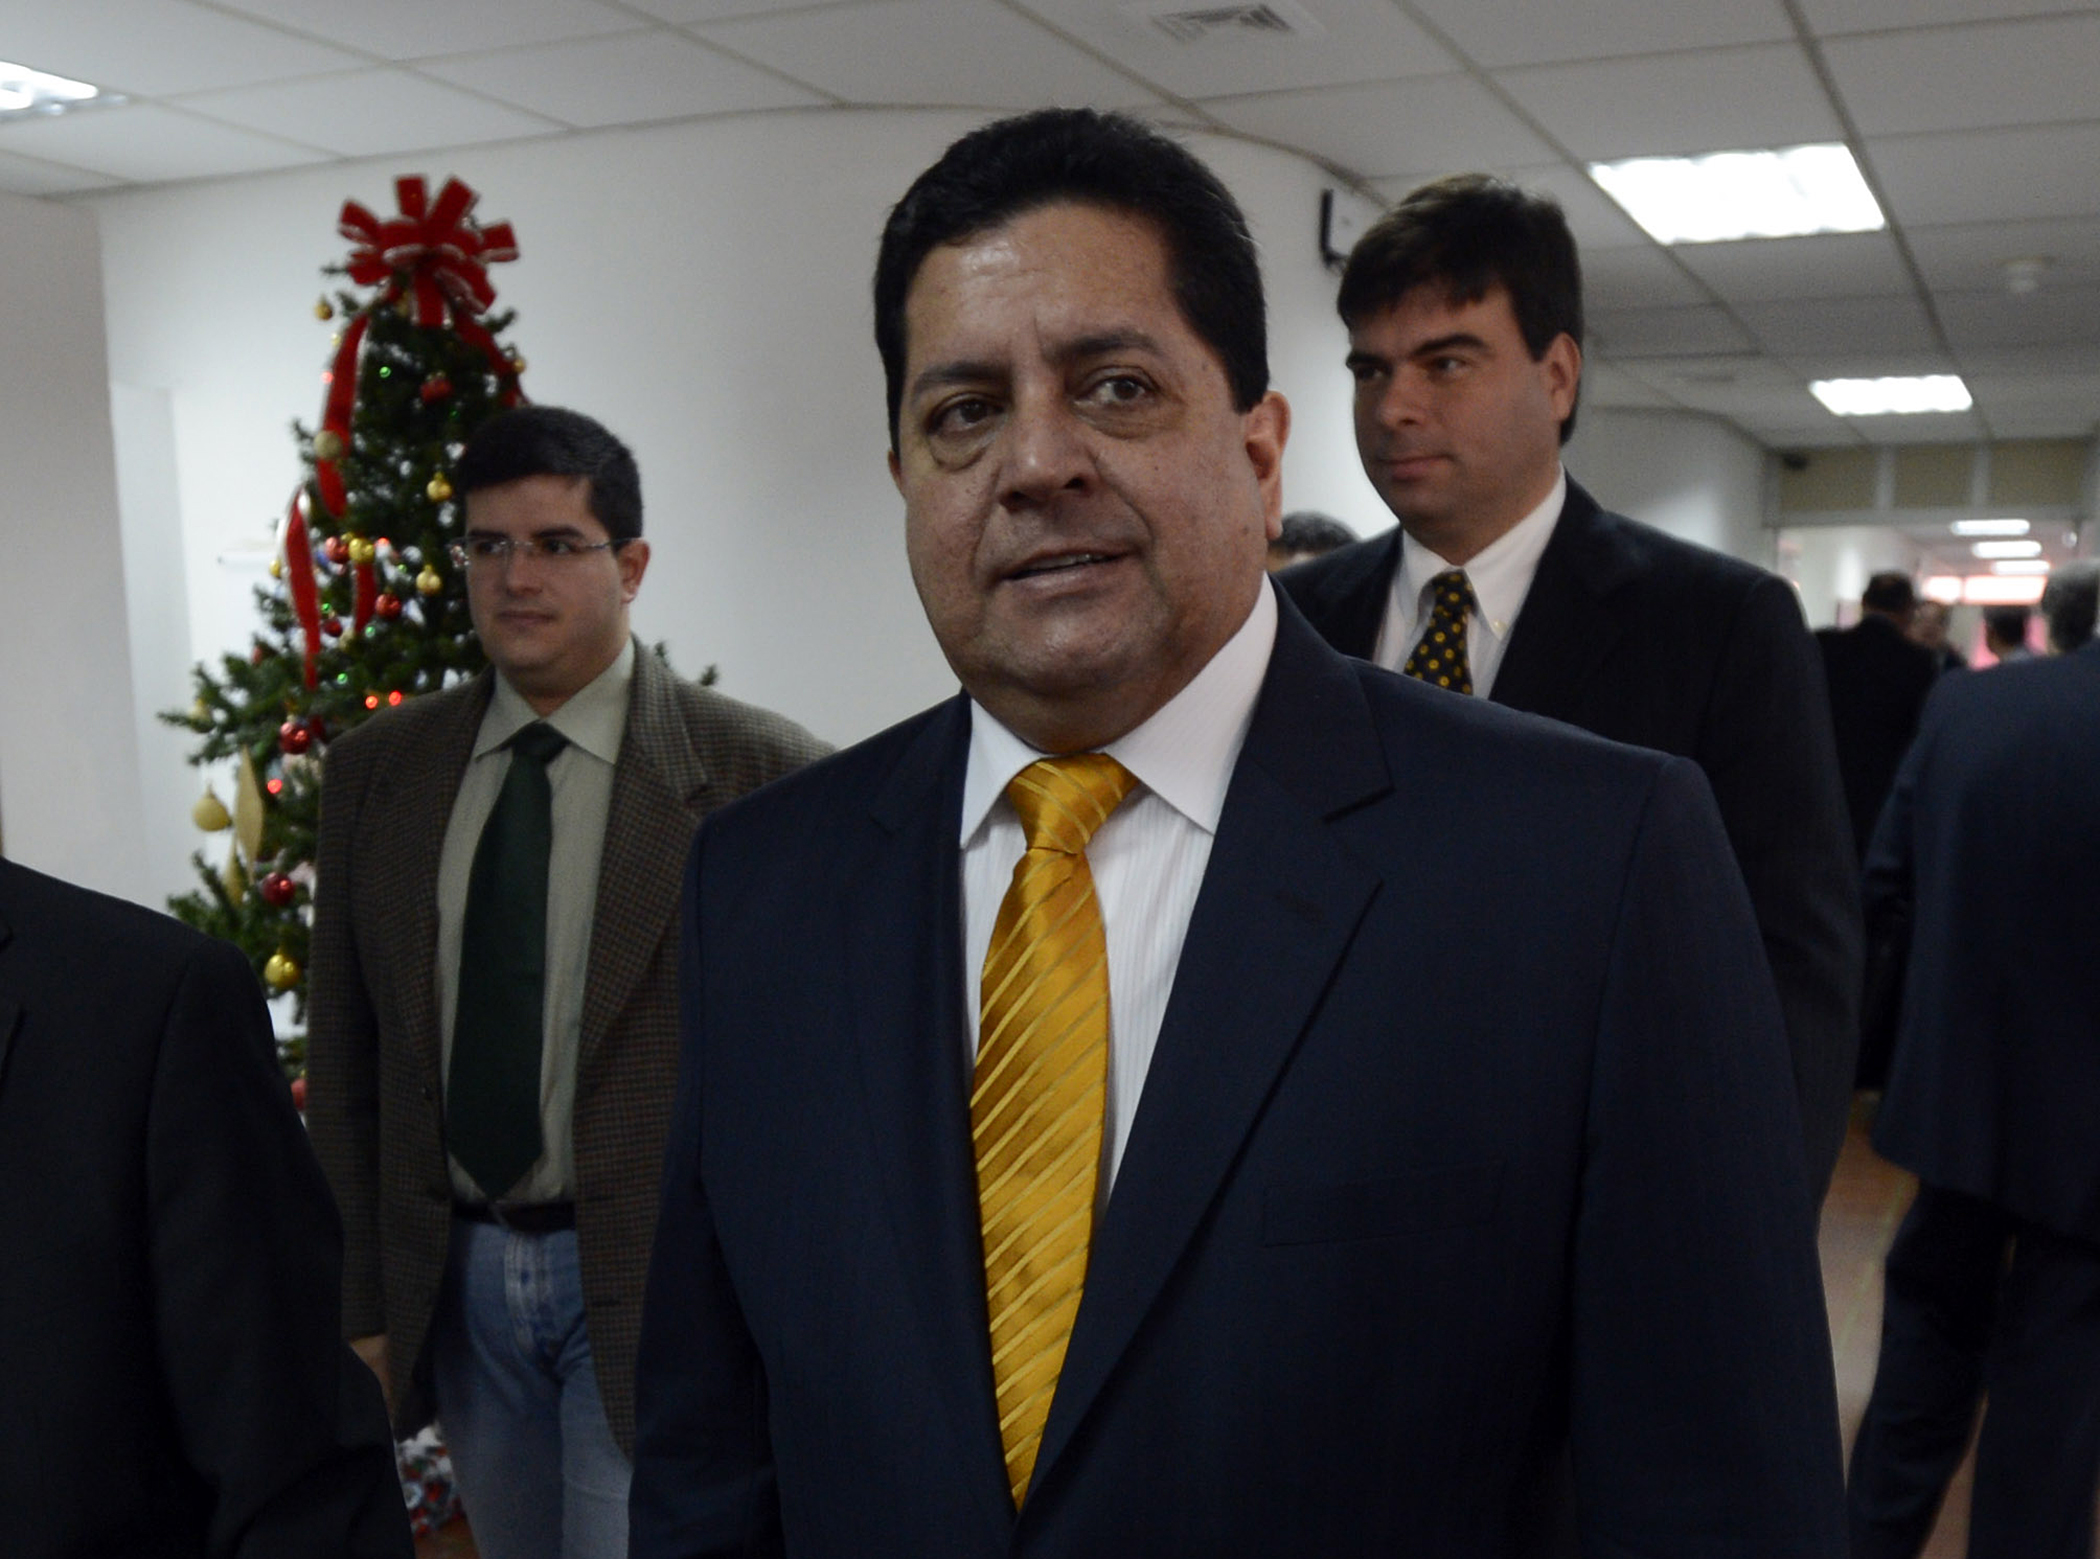 In this file photo taken on Jan. 7, 2013, opposition deputy Edgar Zambrano walks to a meeting of the country's clergy in Caracas.